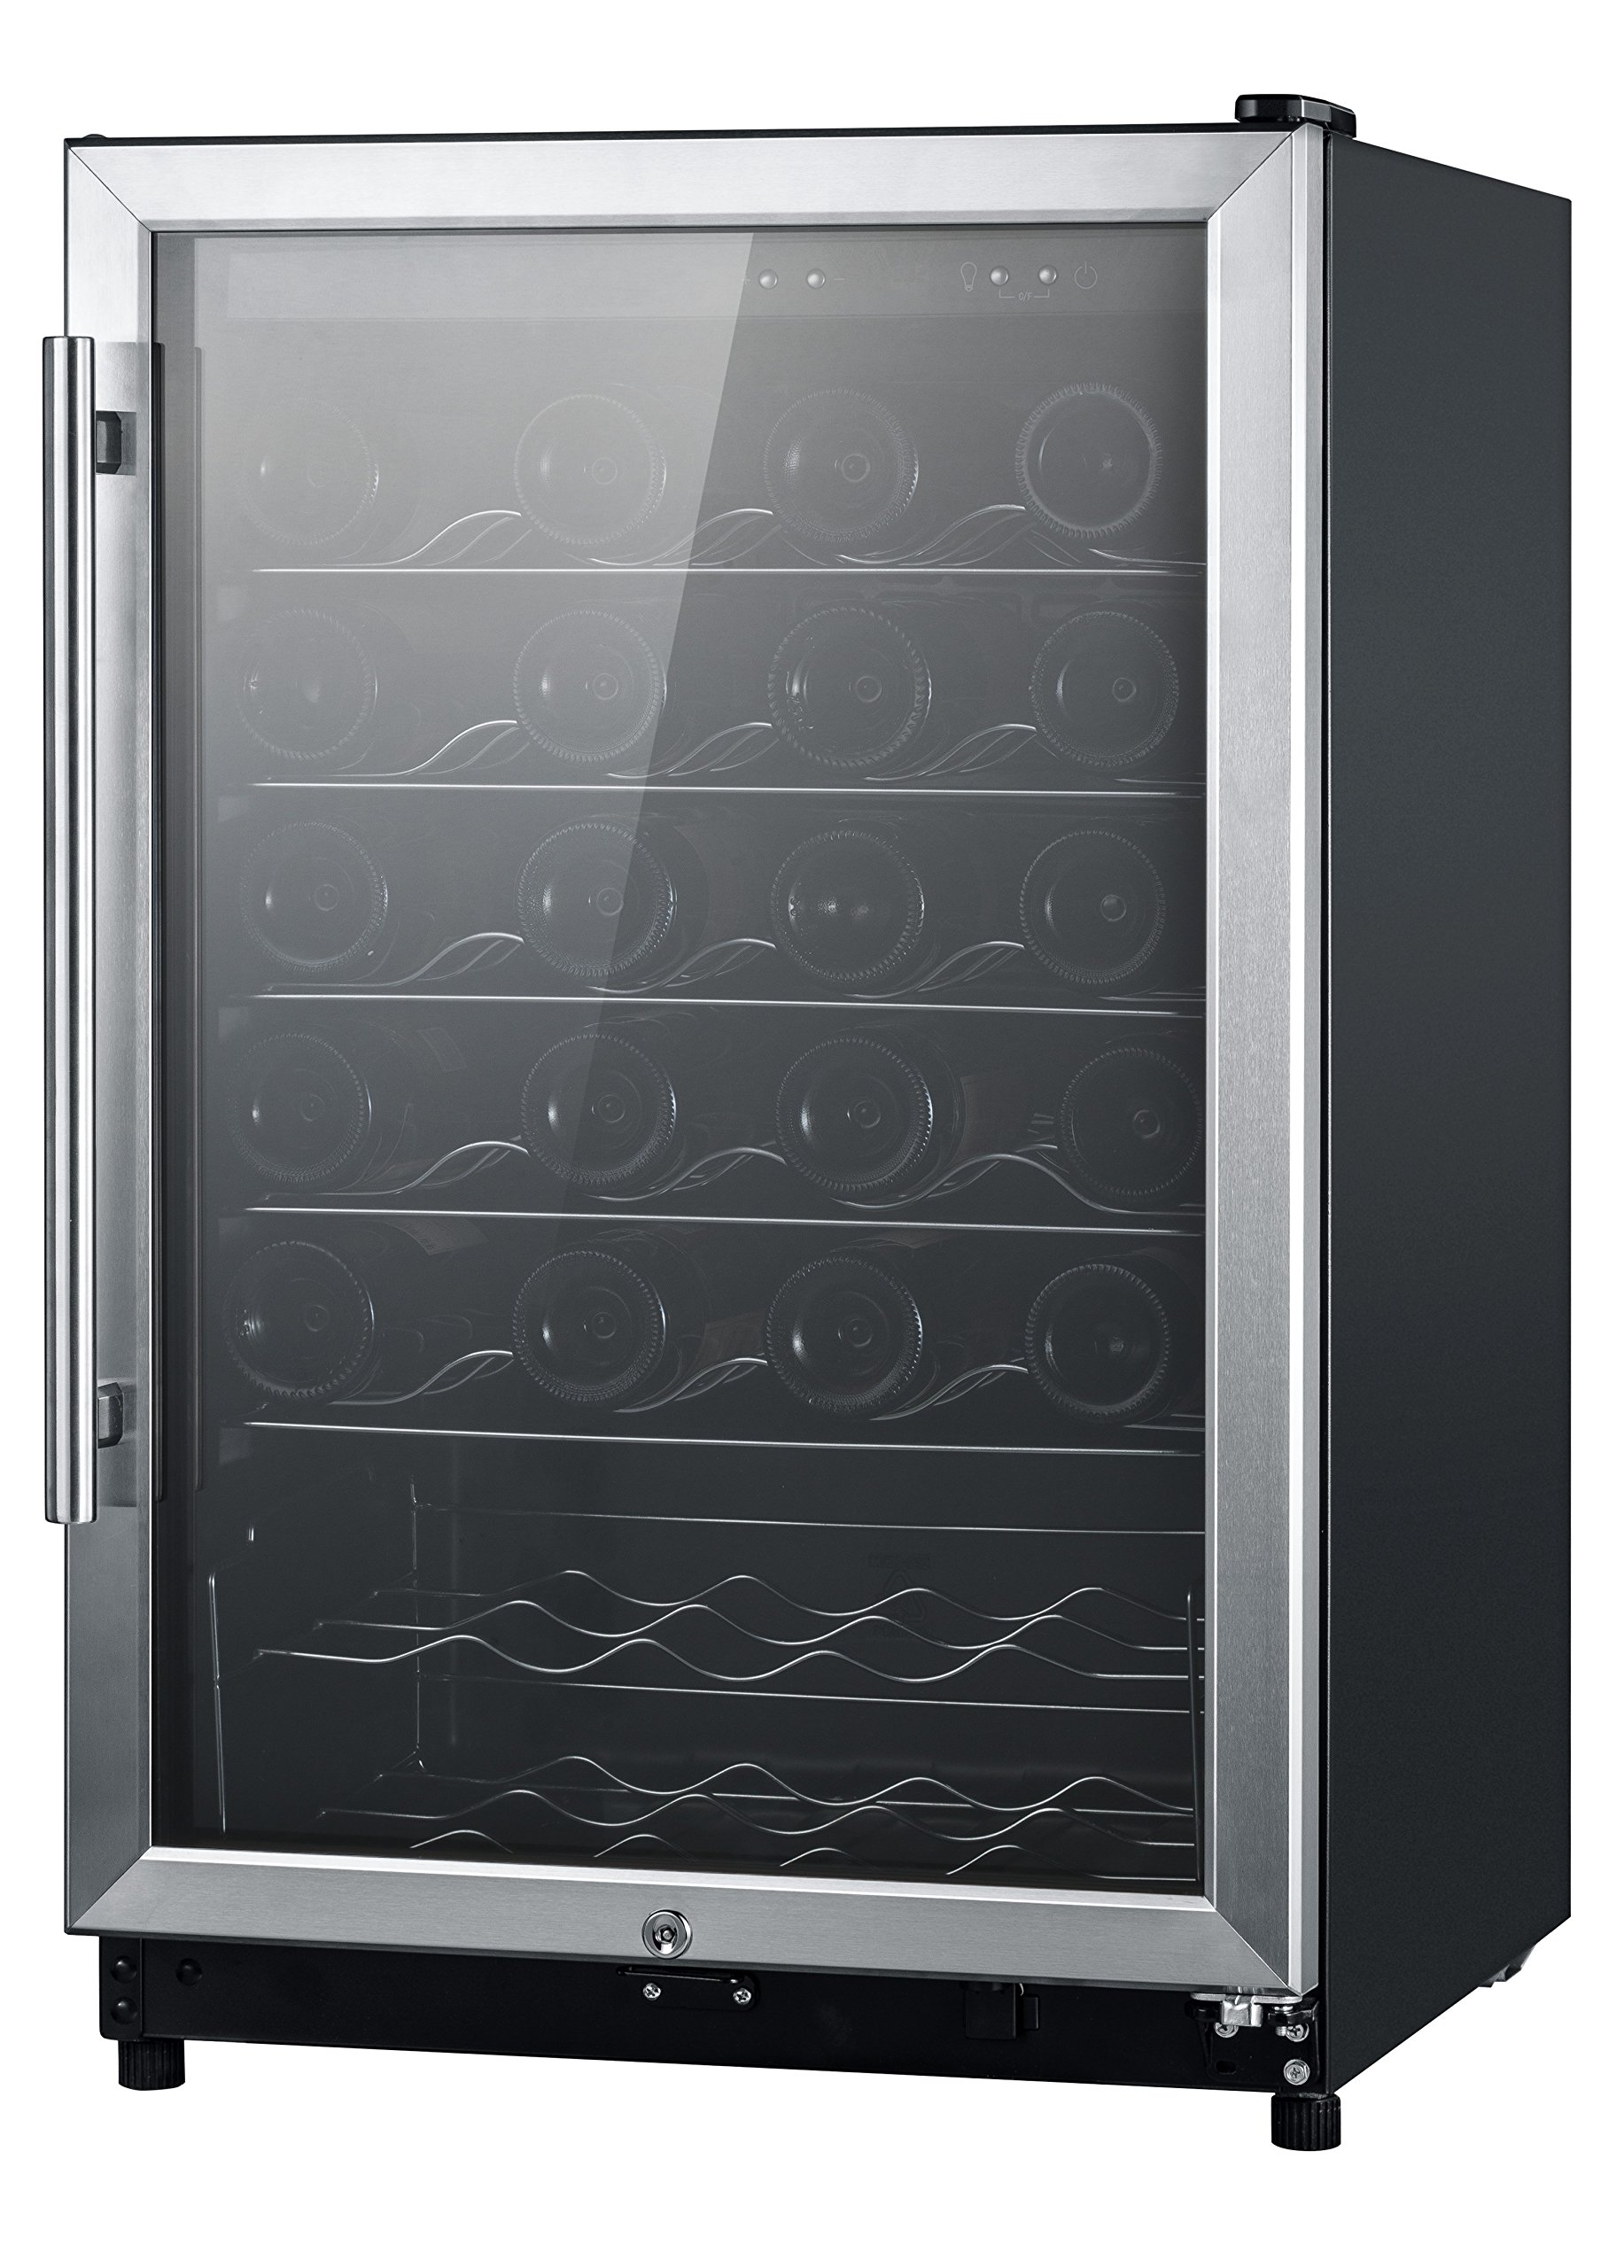 Midea WHS-168WES1 45-Bottle Free Standing Wine Cooler, Wood Shelves, Black with Stainless Steel Door by MIDEA